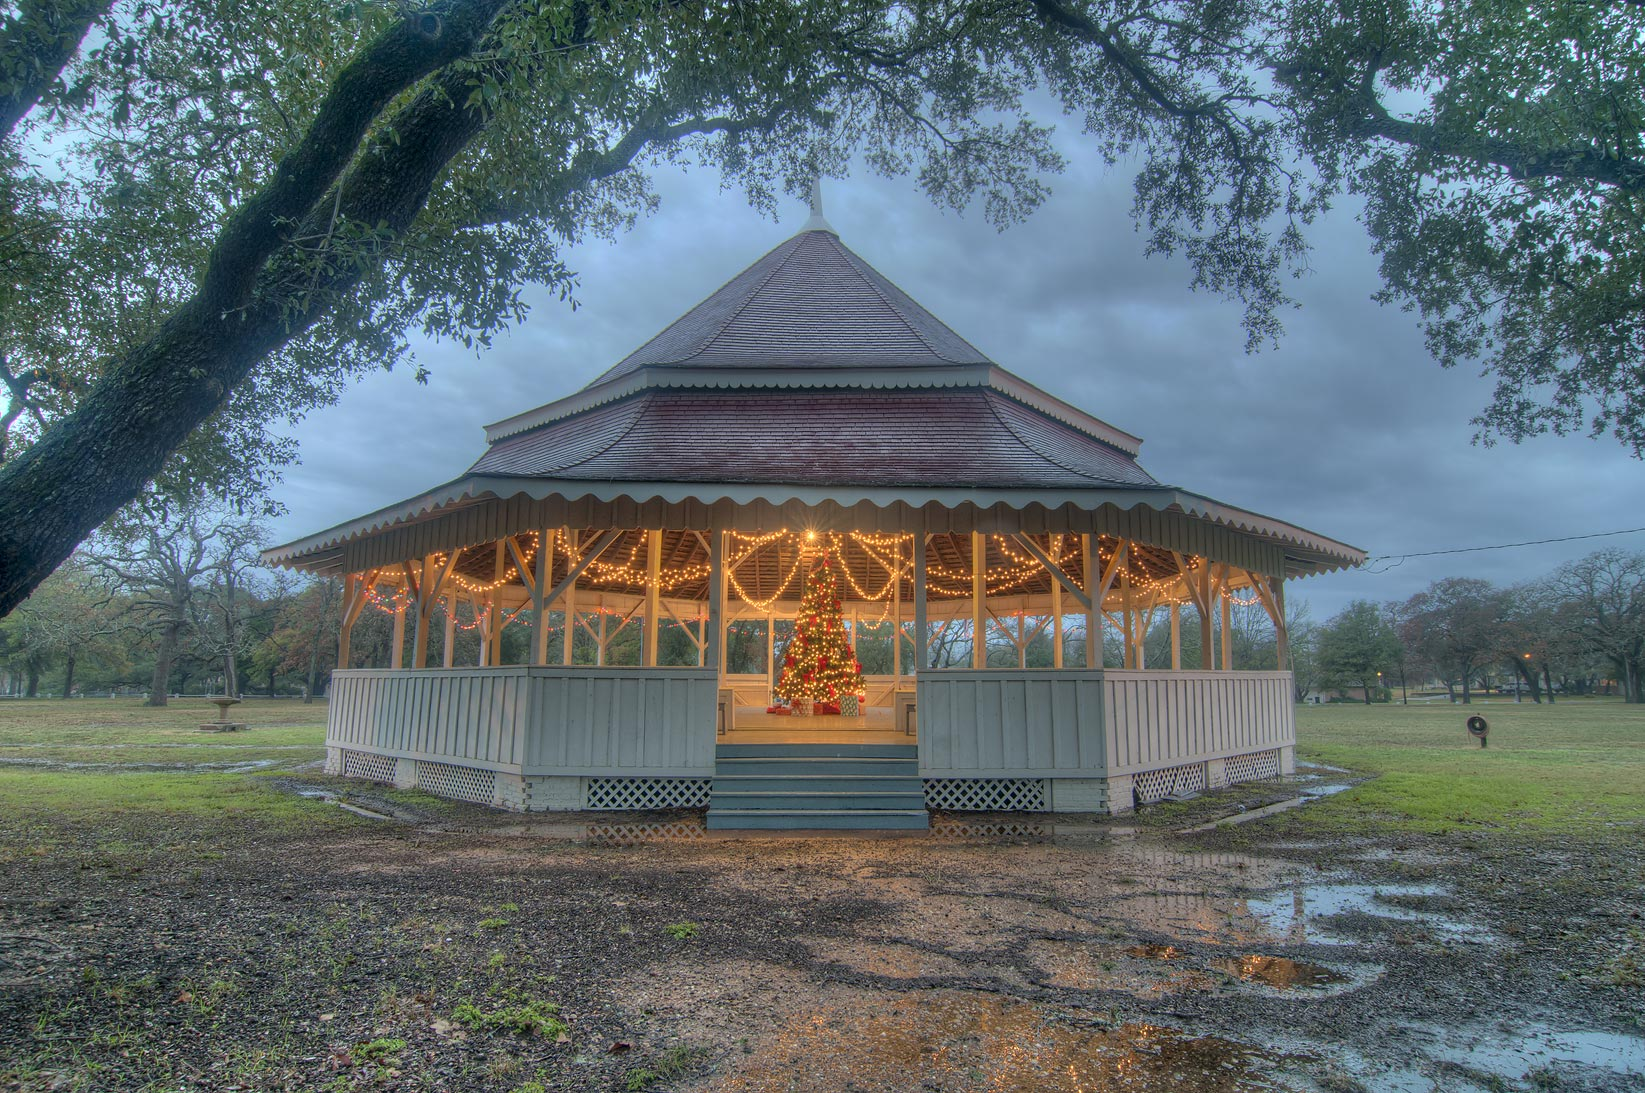 Virginia Field Park, with gazebo-style octogonal pavillion. Calvert, Texas